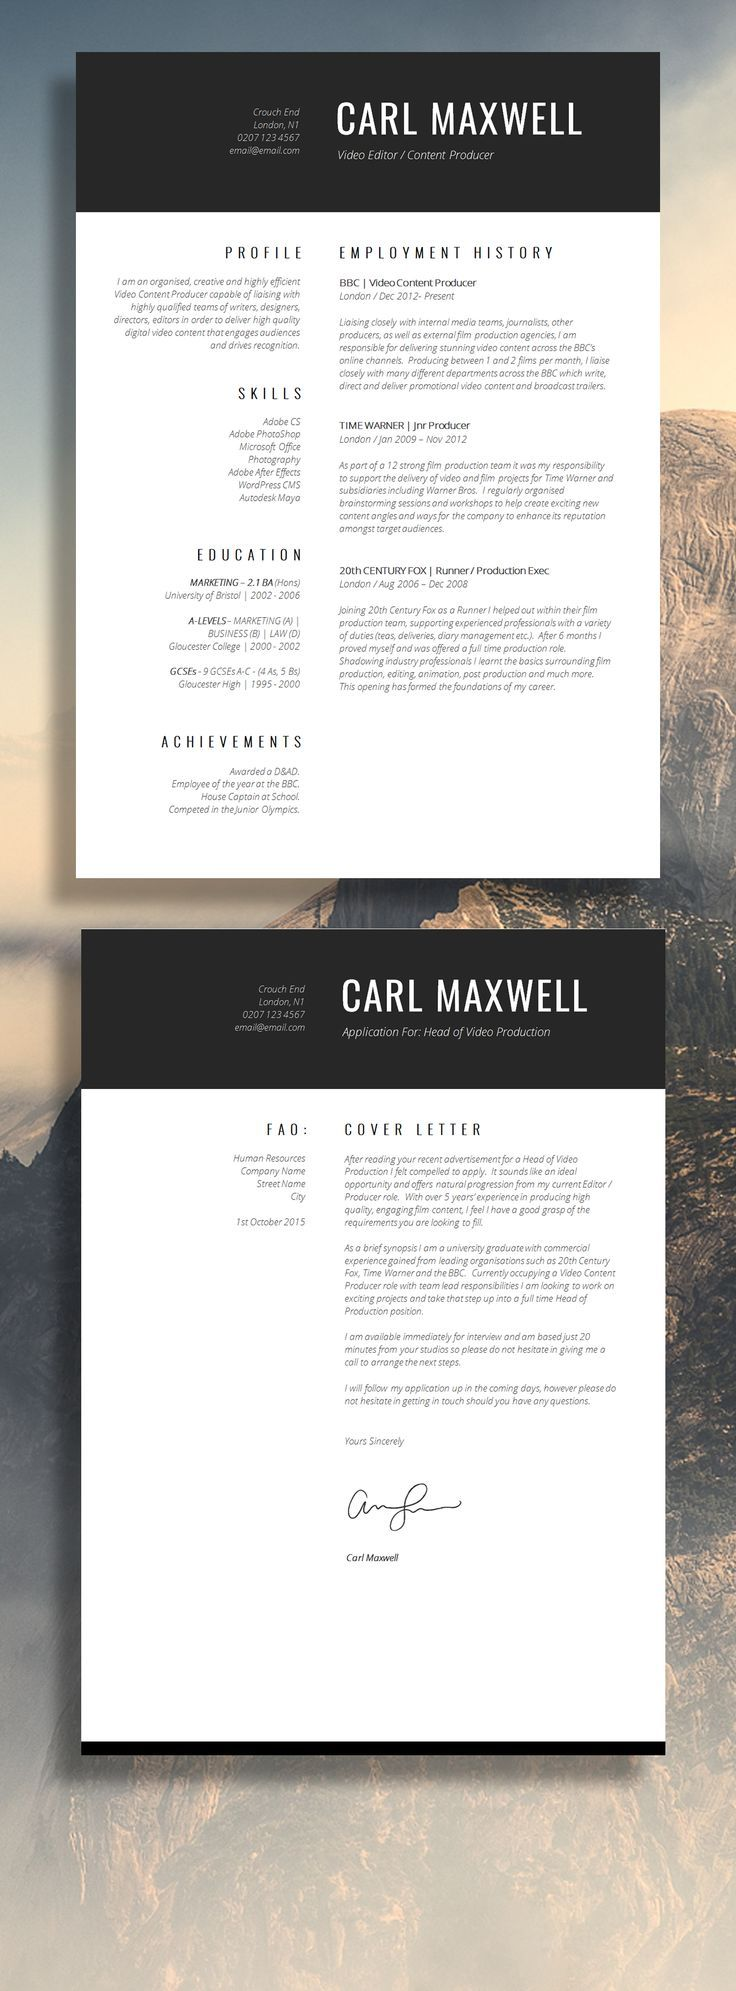 Professional Resume Template | Cv Template | Resume Advice | Cover